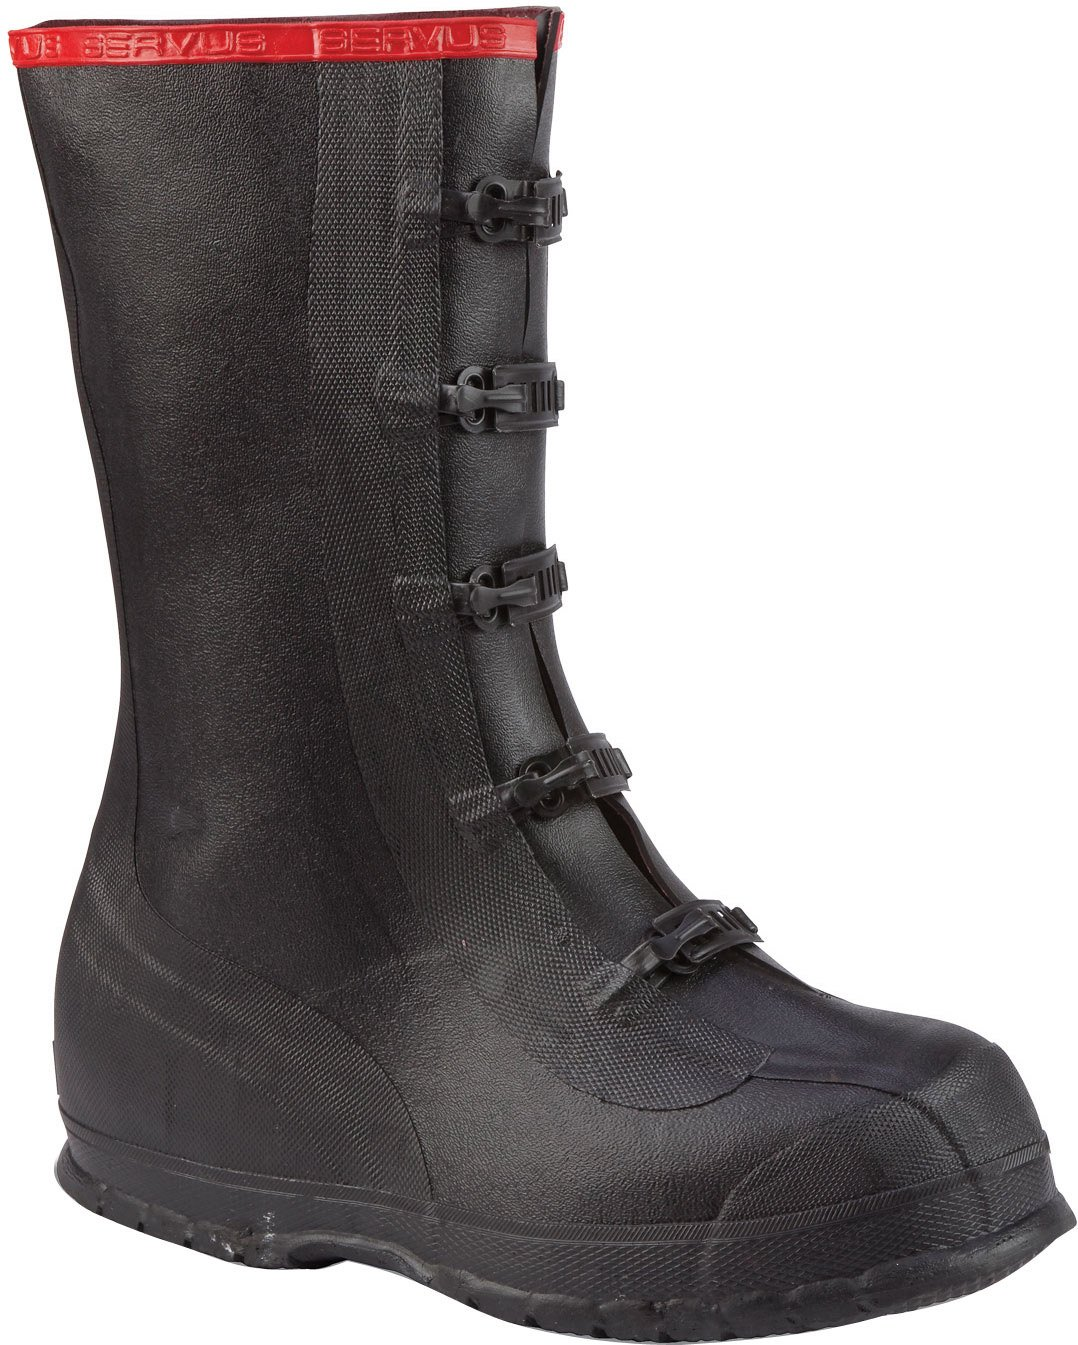 Ranger 15'' Rubber Supersized Men's Overboots, Black (T369) by Ranger by Honeywell